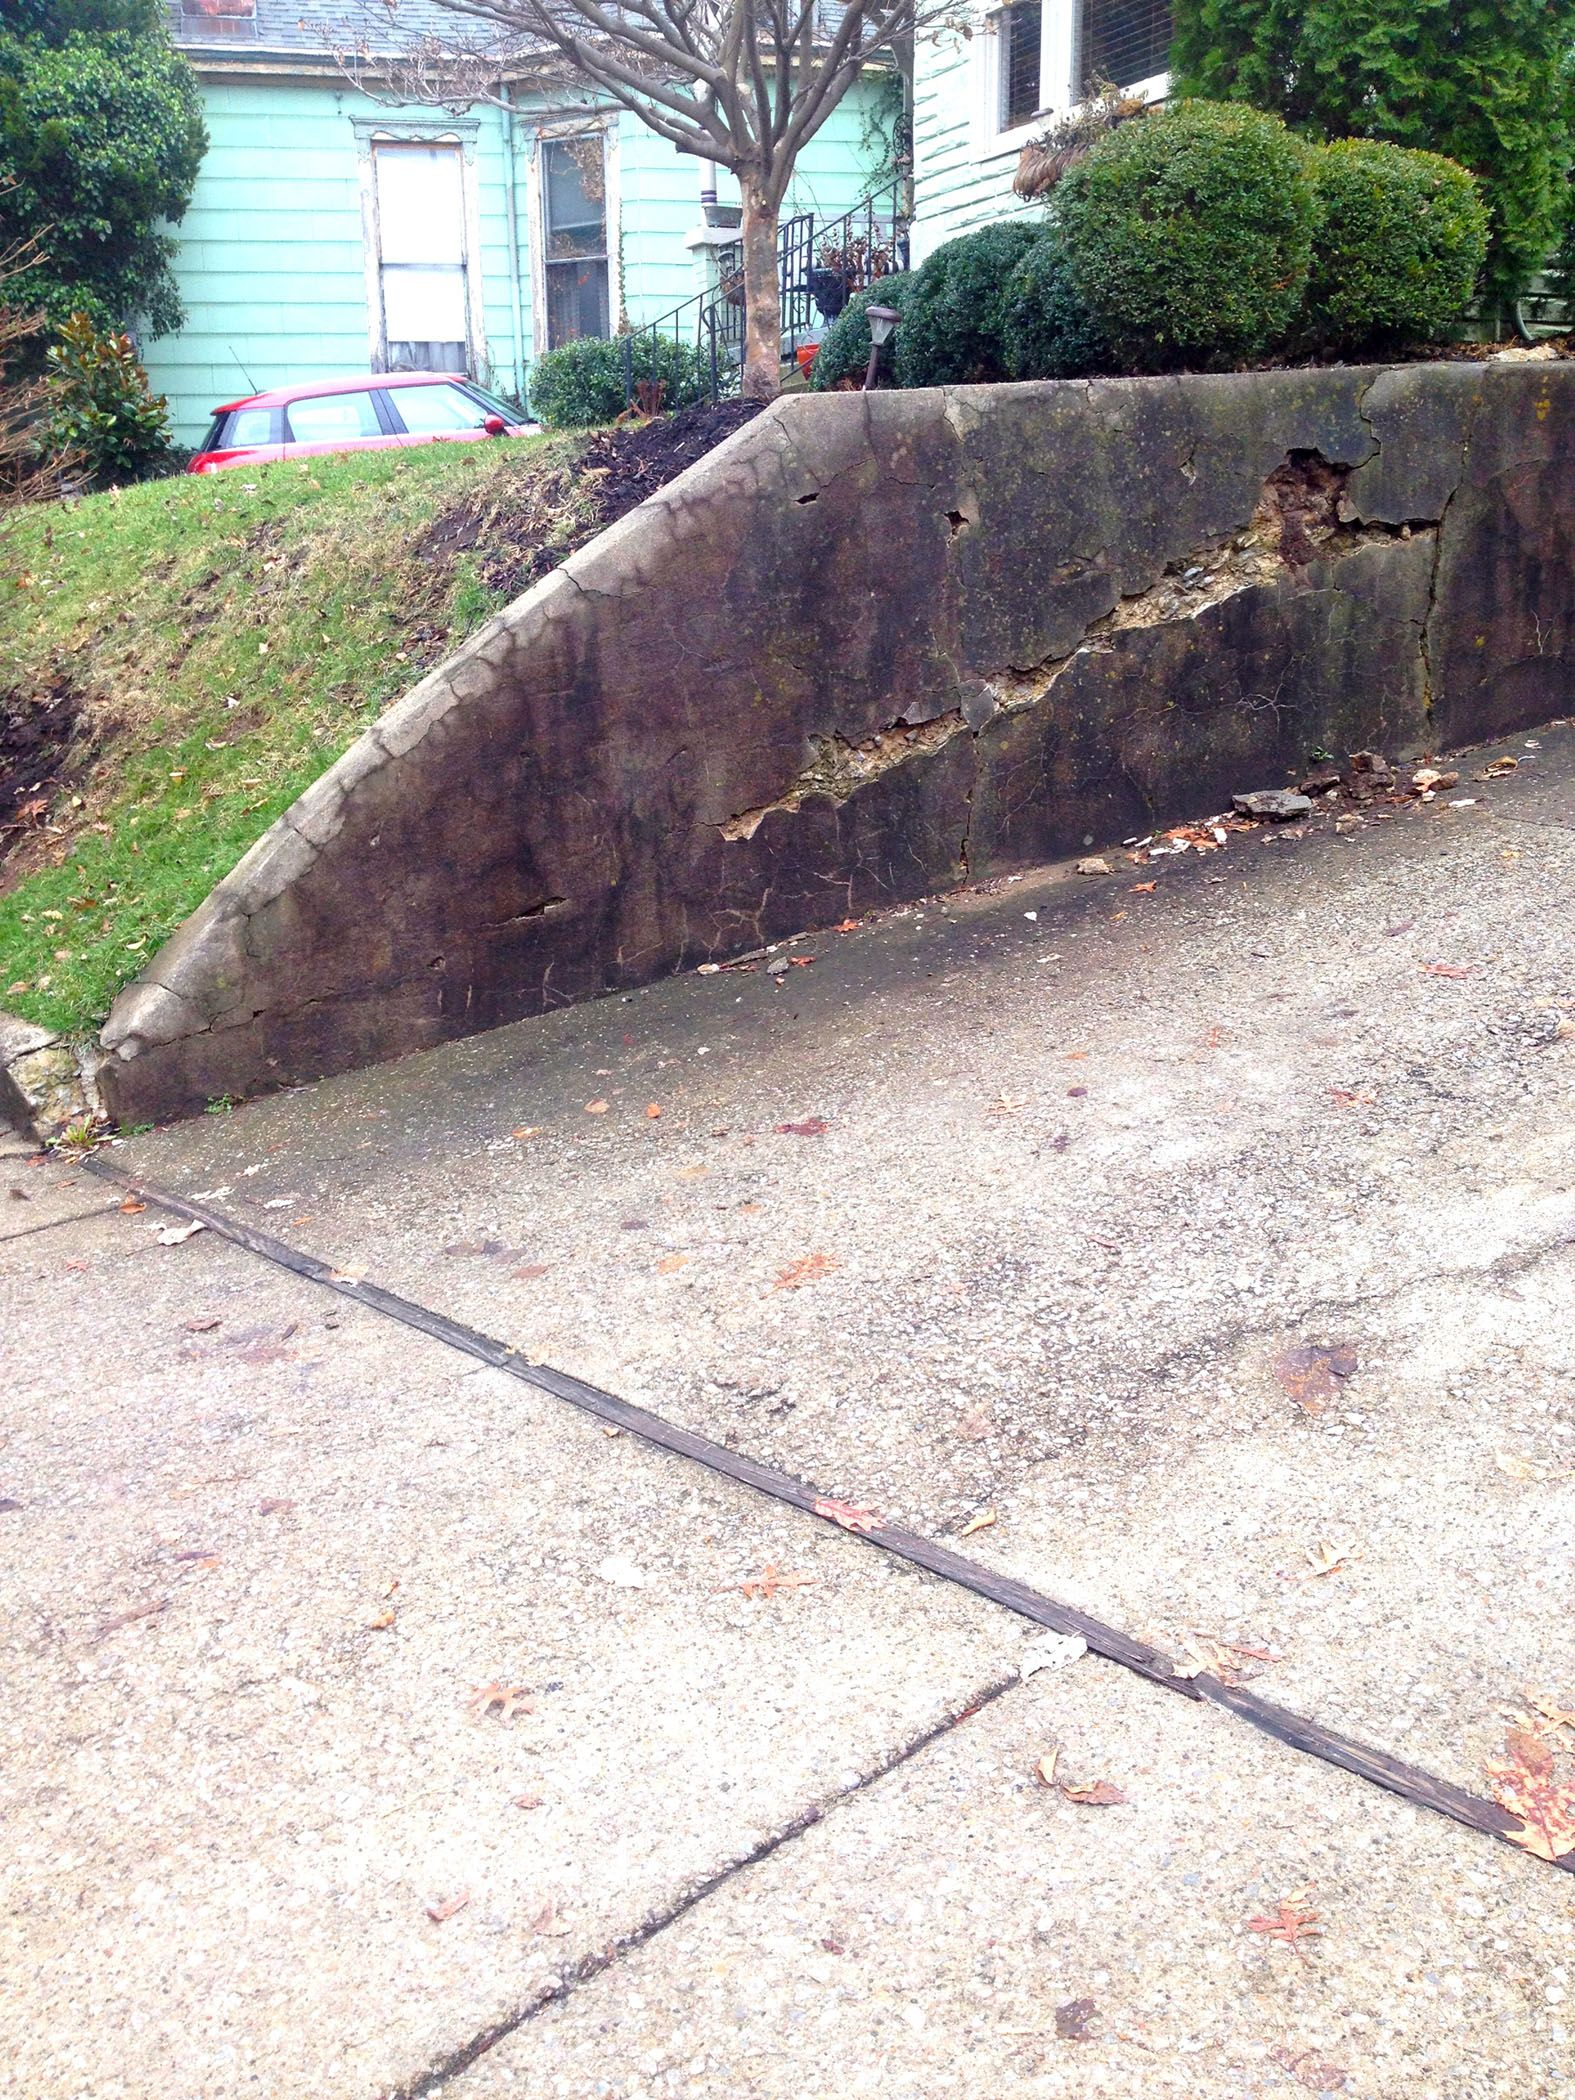 How To Inexpensively Repair A Crumbling Retaining Wall At Your Home With Images Retaining Wall Repair Retaining Wall Landscaping Retaining Walls